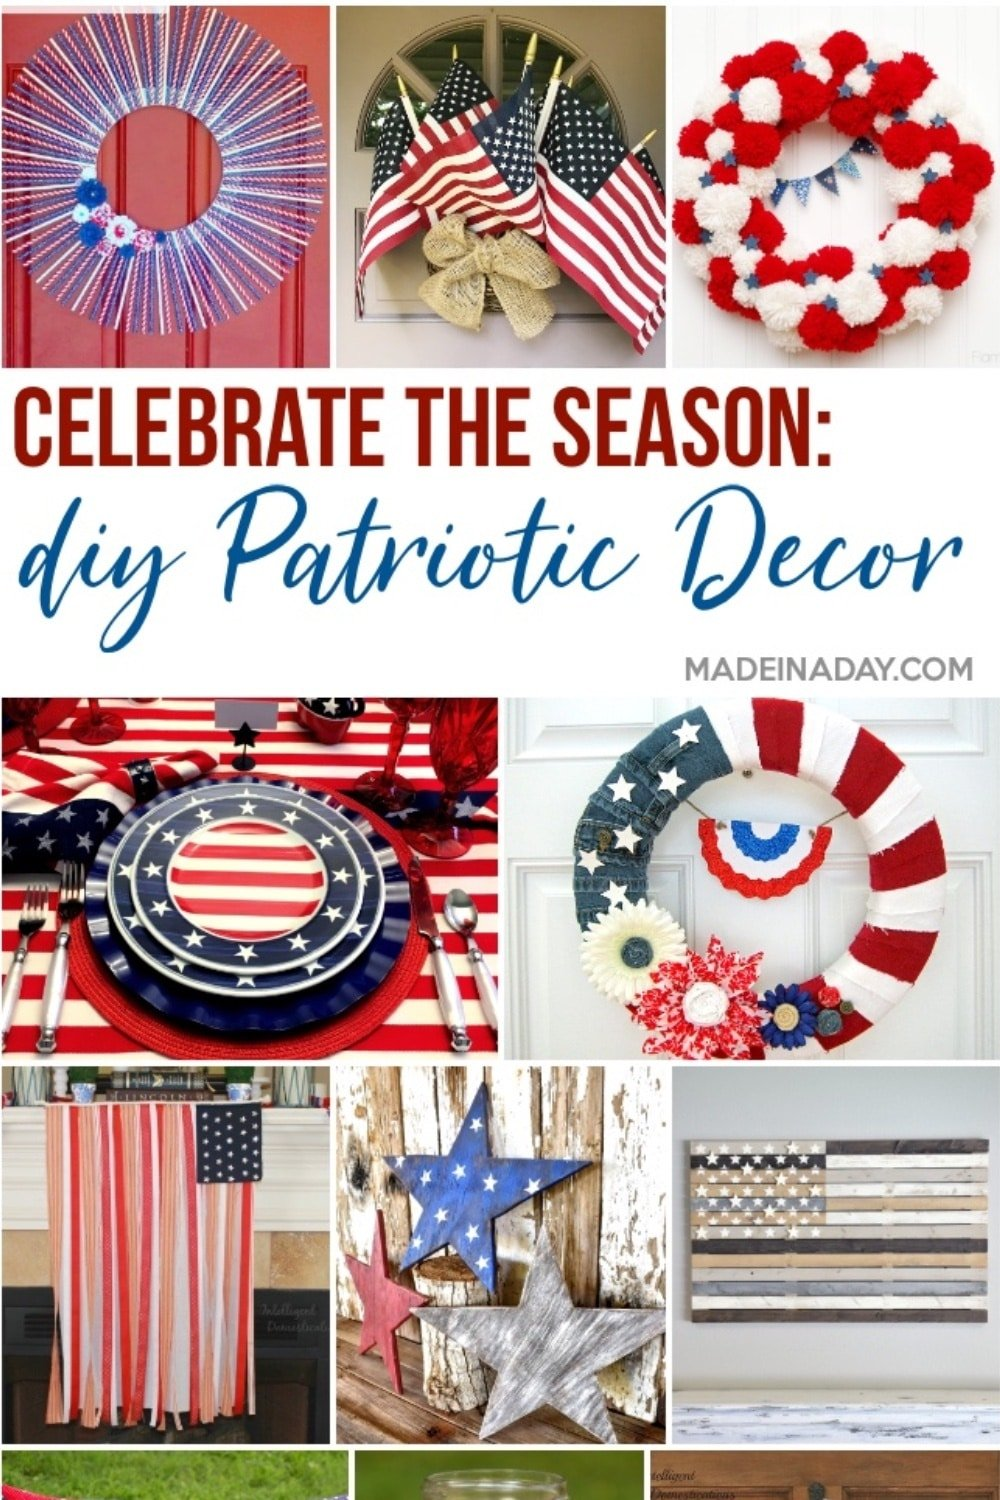 Celebrate: Patriotic Decorations for the Home